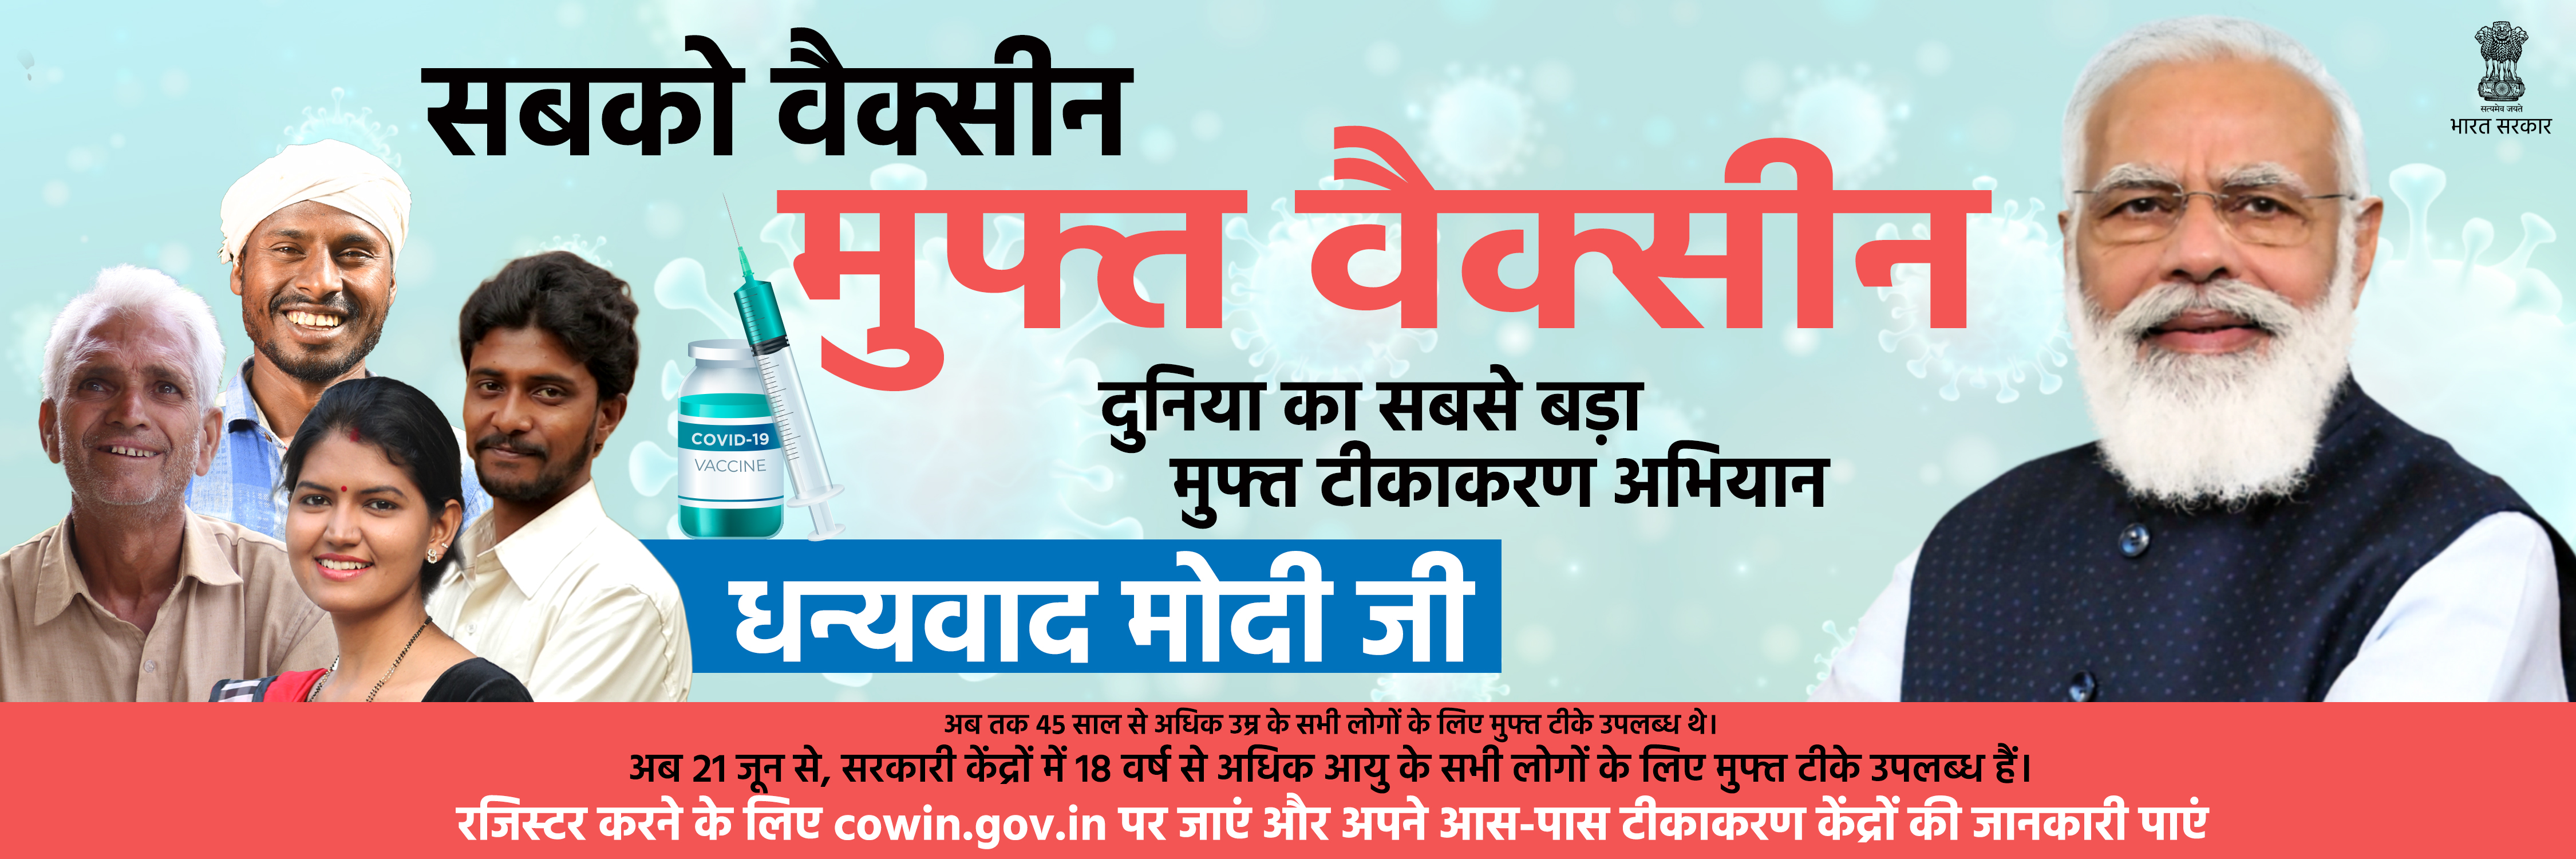 Vaccination for All Free for All- Hindi